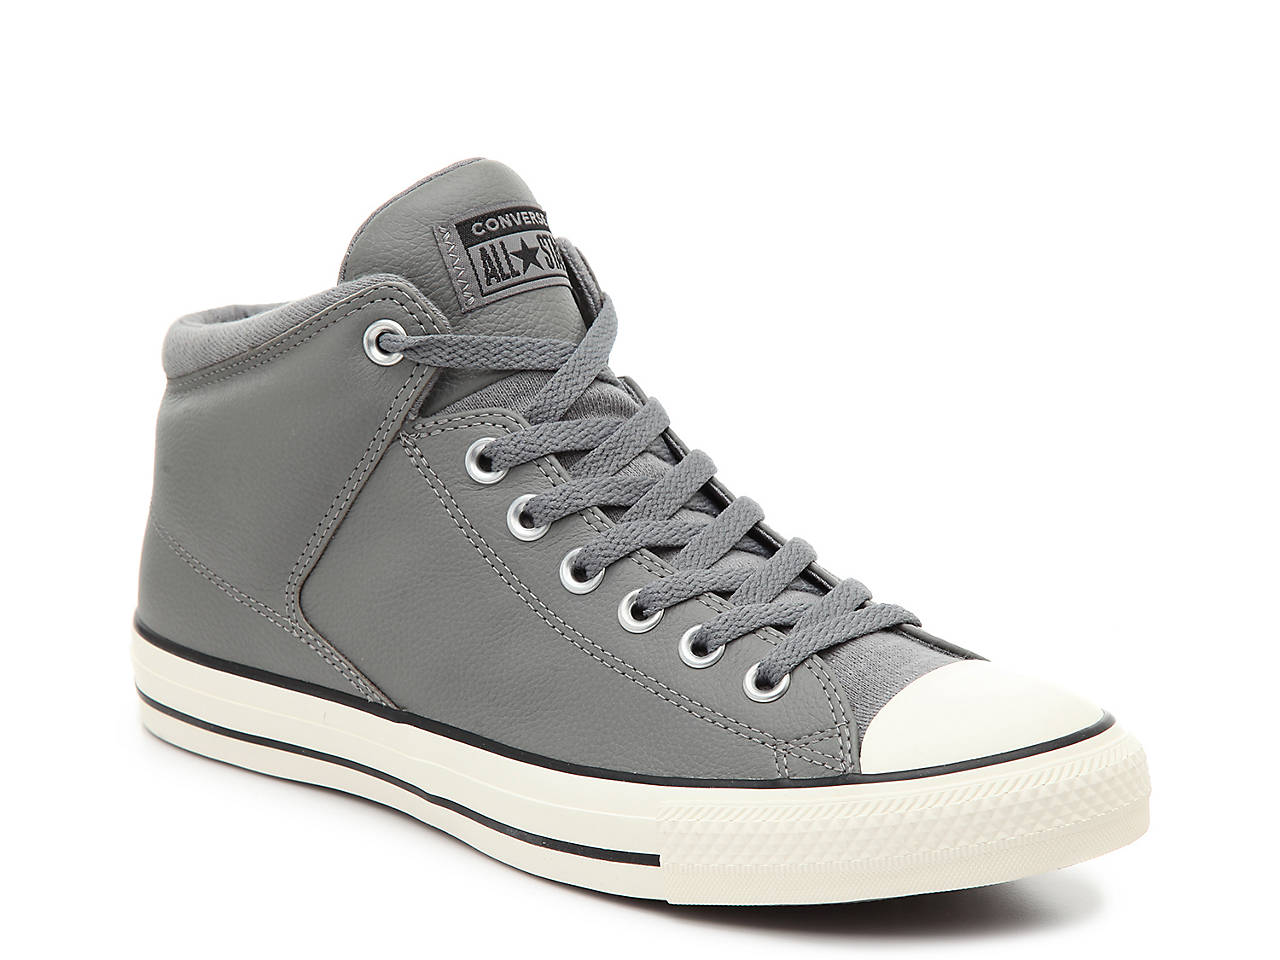 f27961061941 Converse Chuck Taylor All Star Hi Street Leather High-Top Sneaker ...